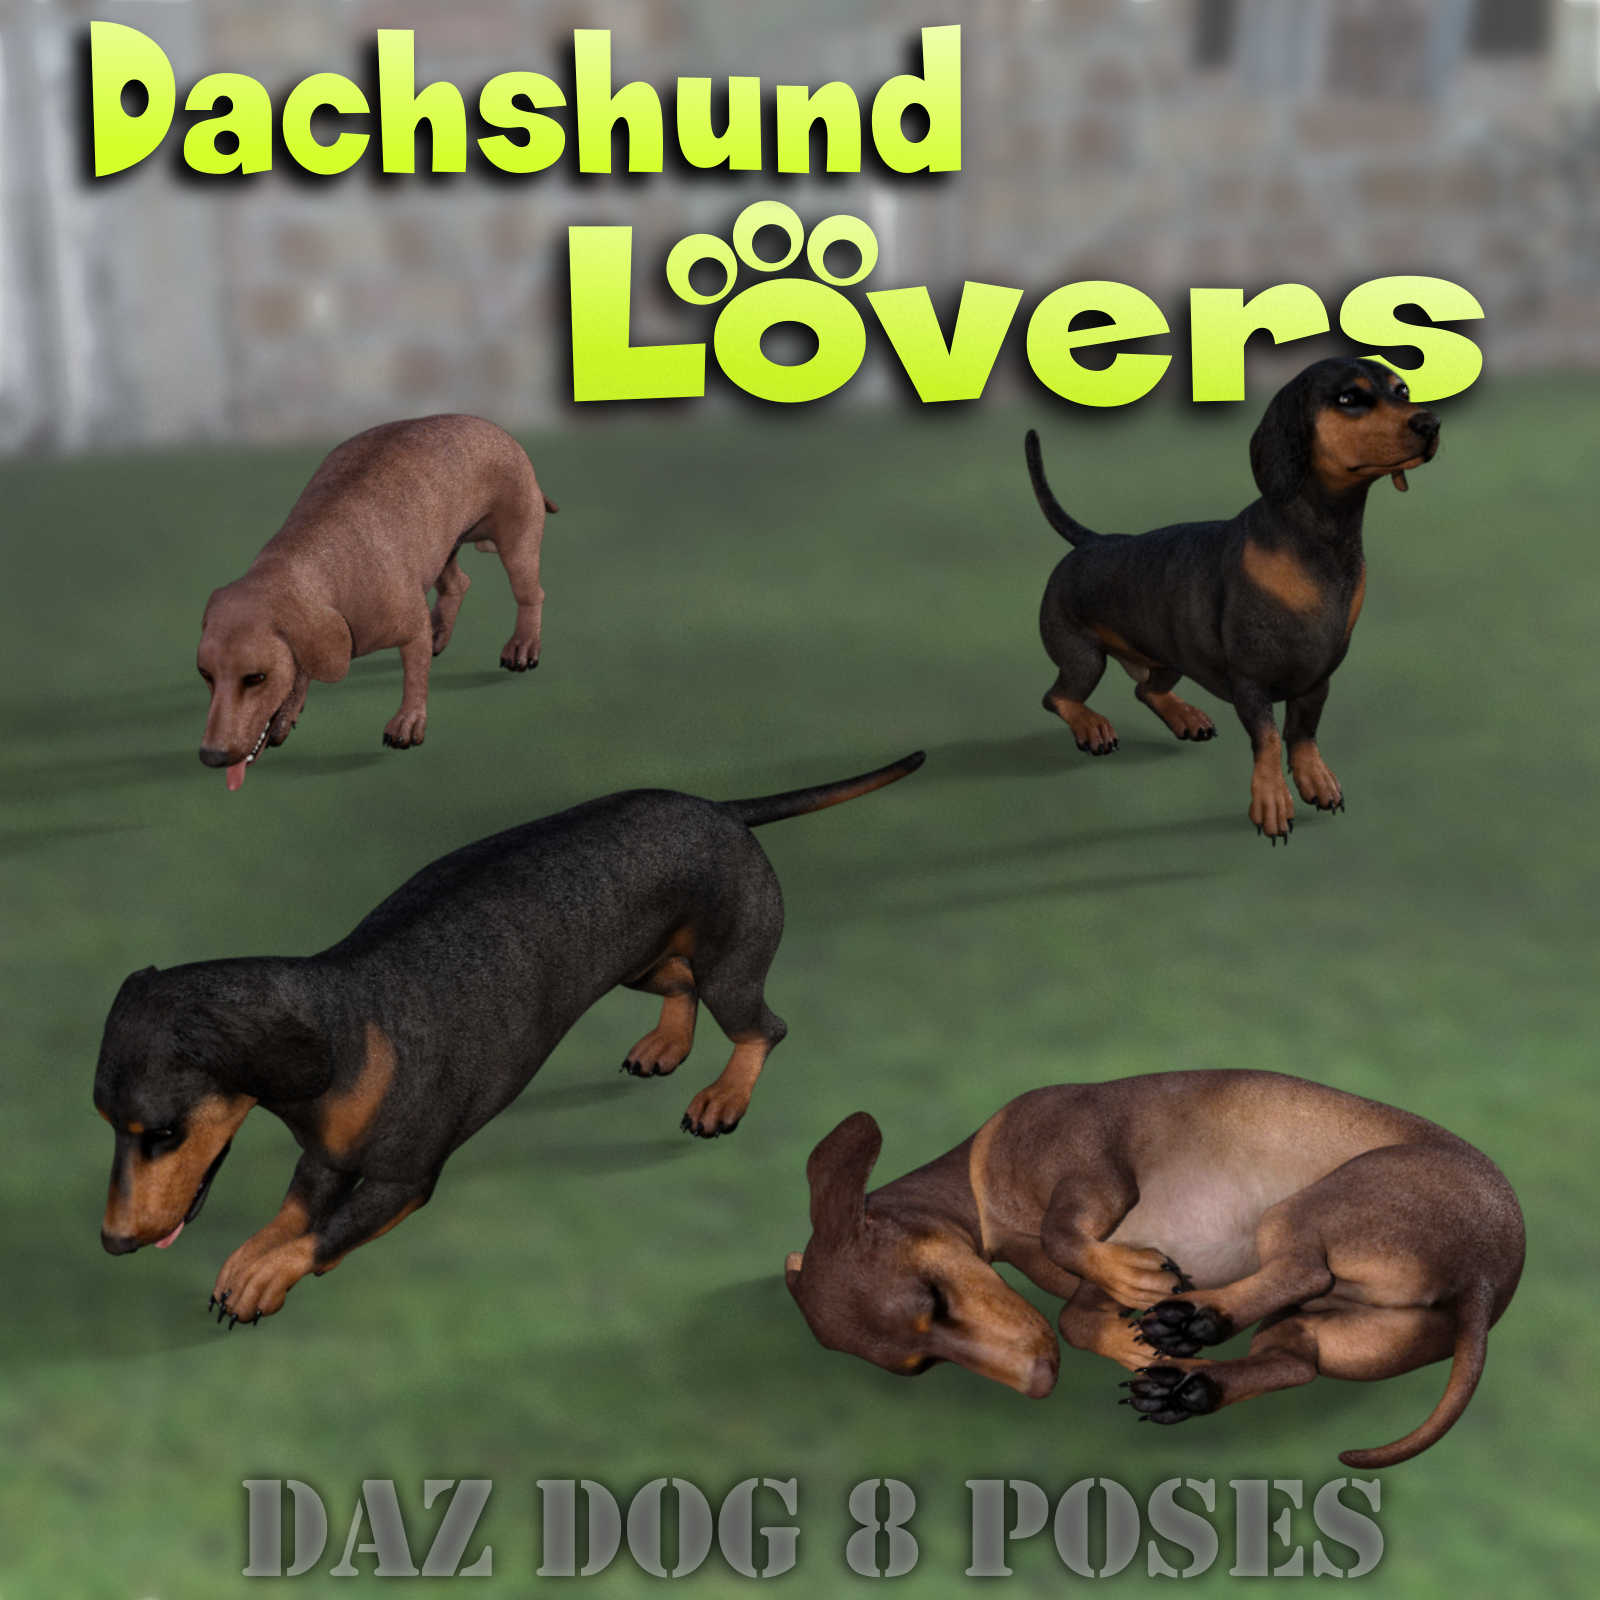 DACHSHUND Lovers Poses for Dachshund Breed (Daz Dog 8)